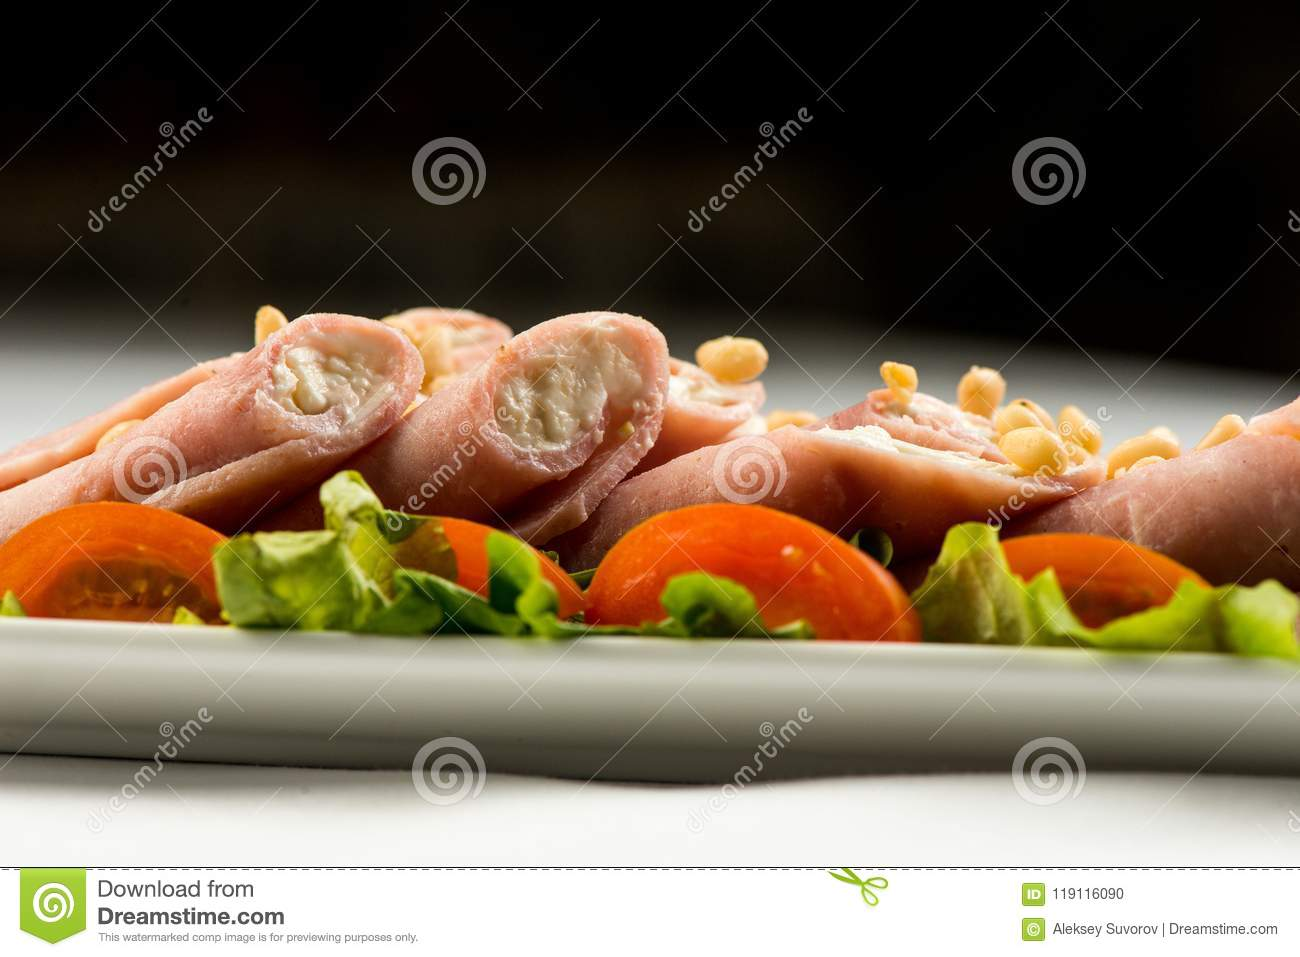 Meat rolls with ham, cheese and greens, on white background